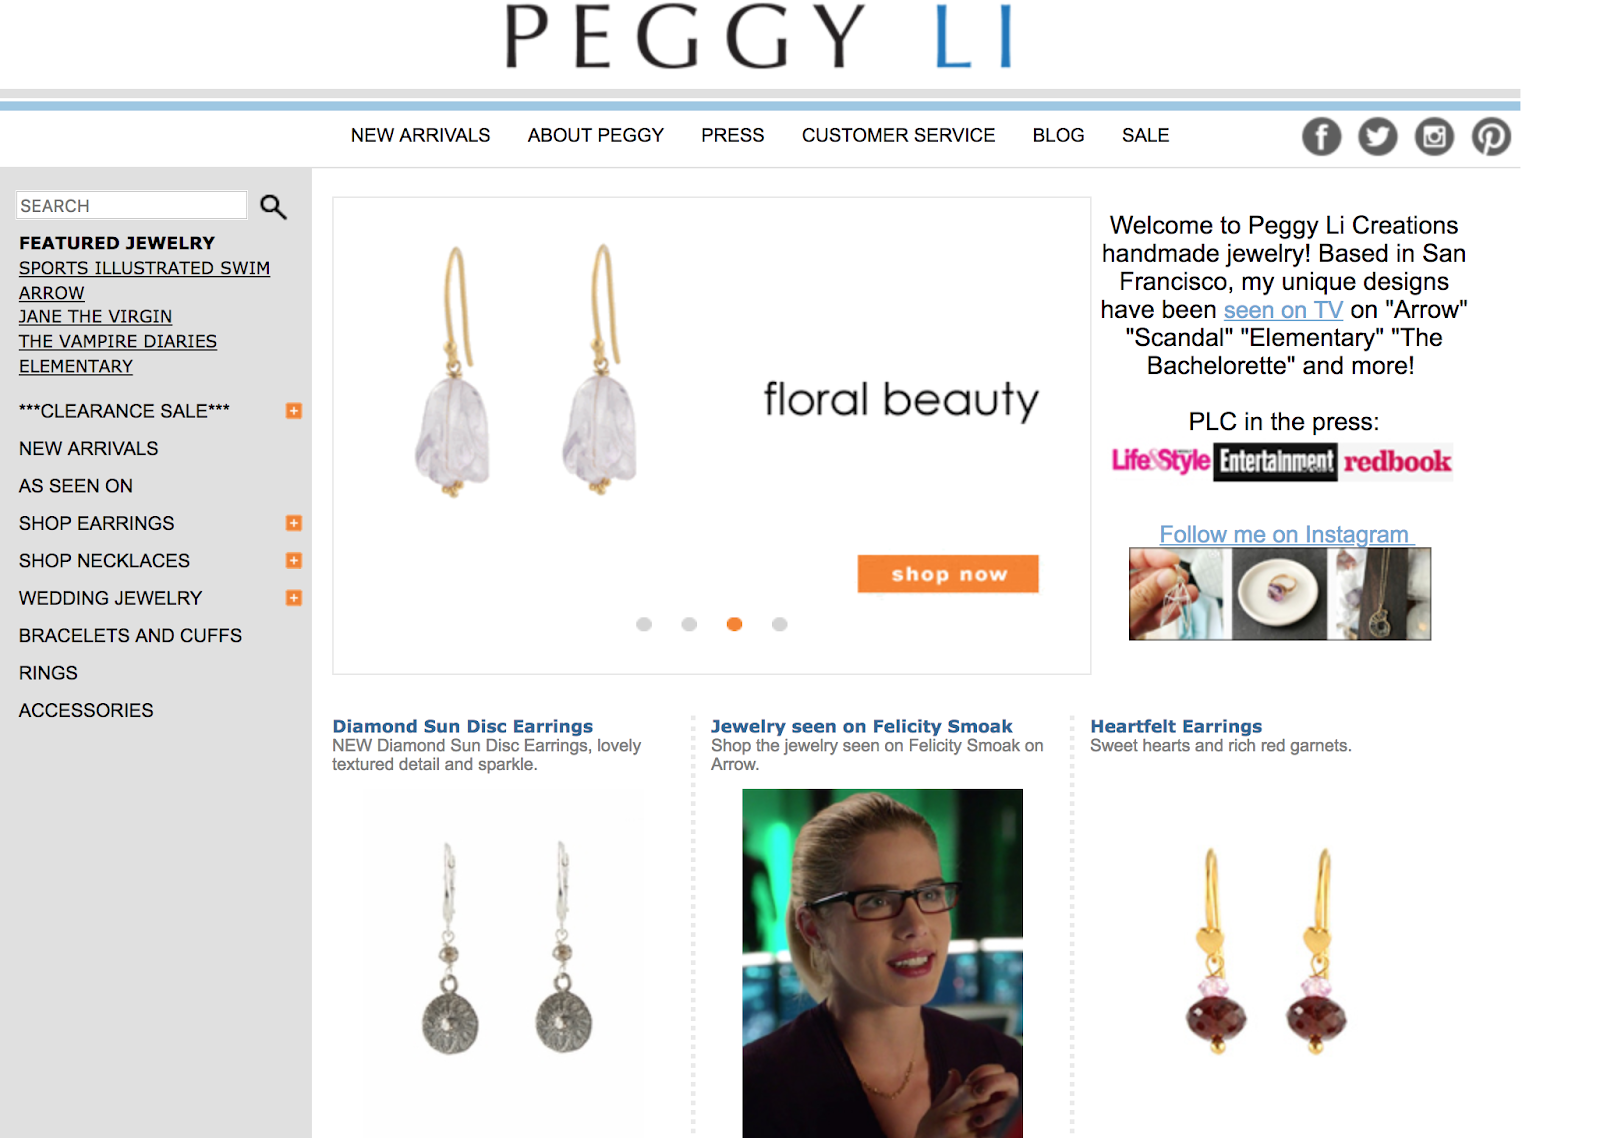 Peggy Li Creations Jewelry Blog on Feedspot - Rss Feed